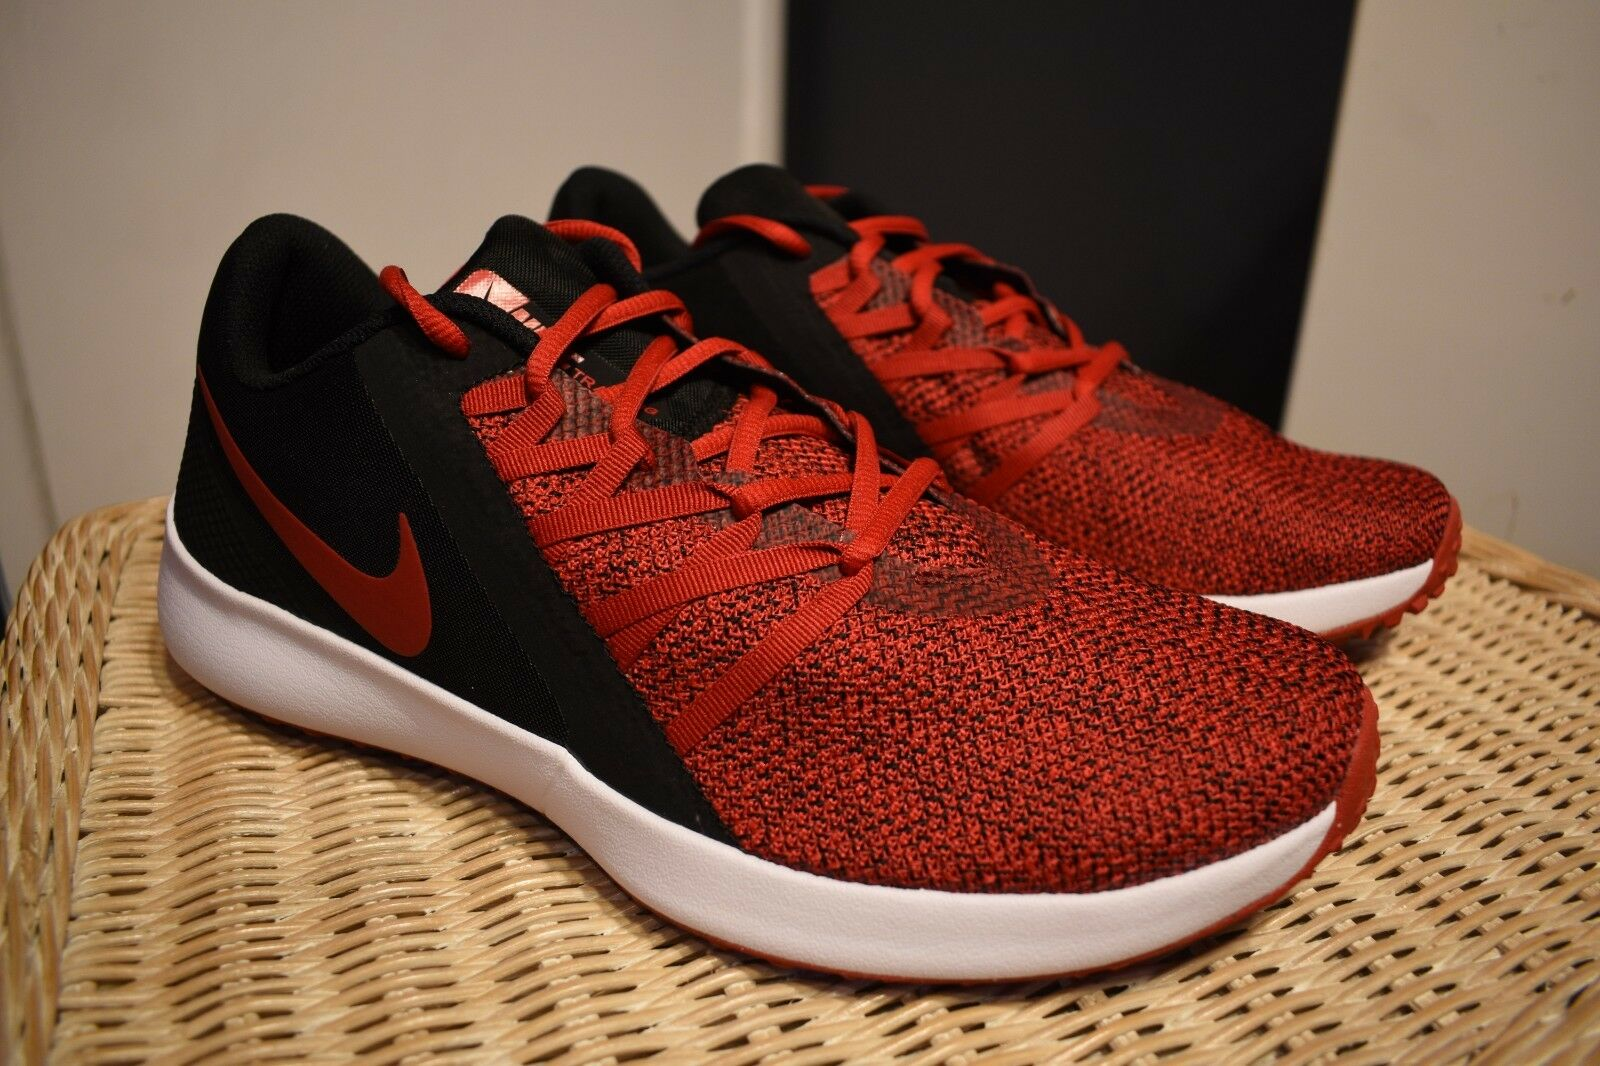 d22604130078 New in Box Nike Varsity Compete Compete Compete Trainer Size 10.5 Black Gym  Red Training